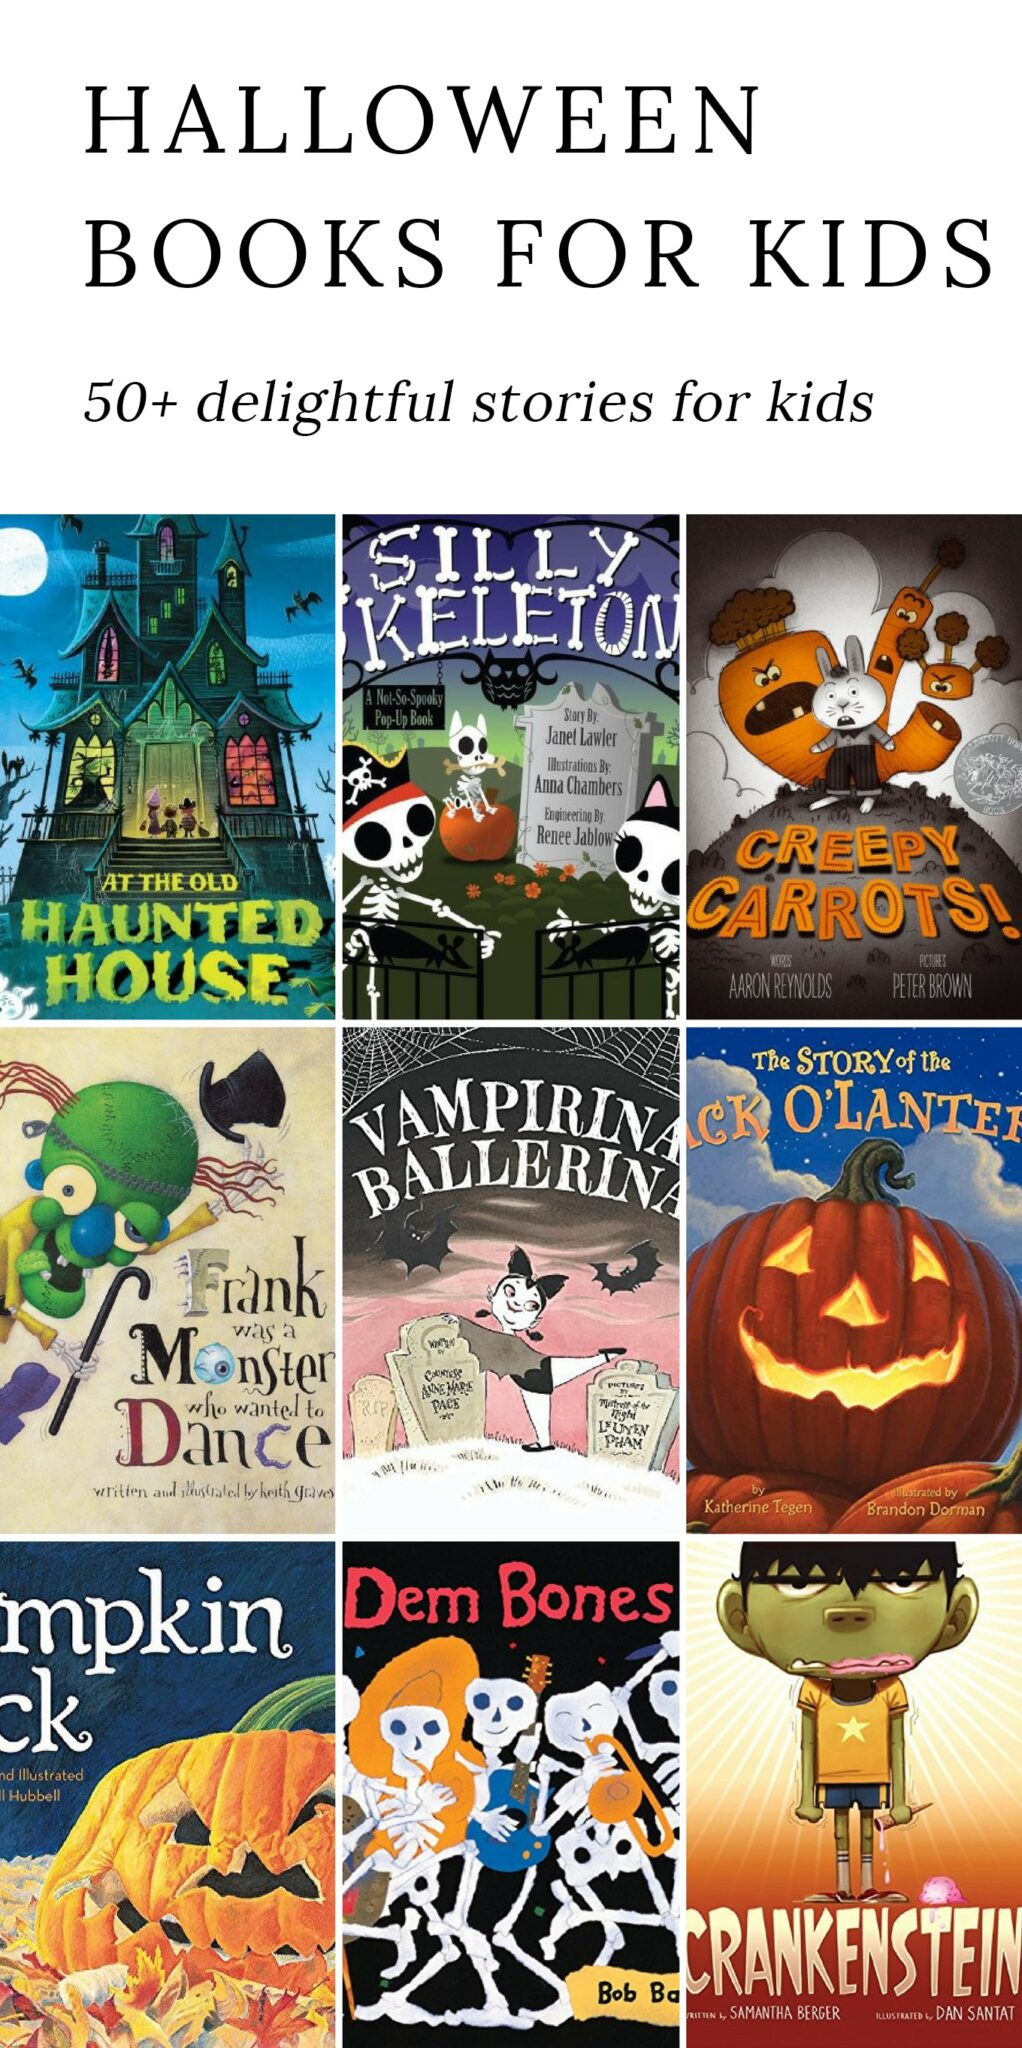 From pumpkins and skeletons to black cats and ghosts, discover 50+ delightful Halloween books for families. Perfect for kids of all ages.